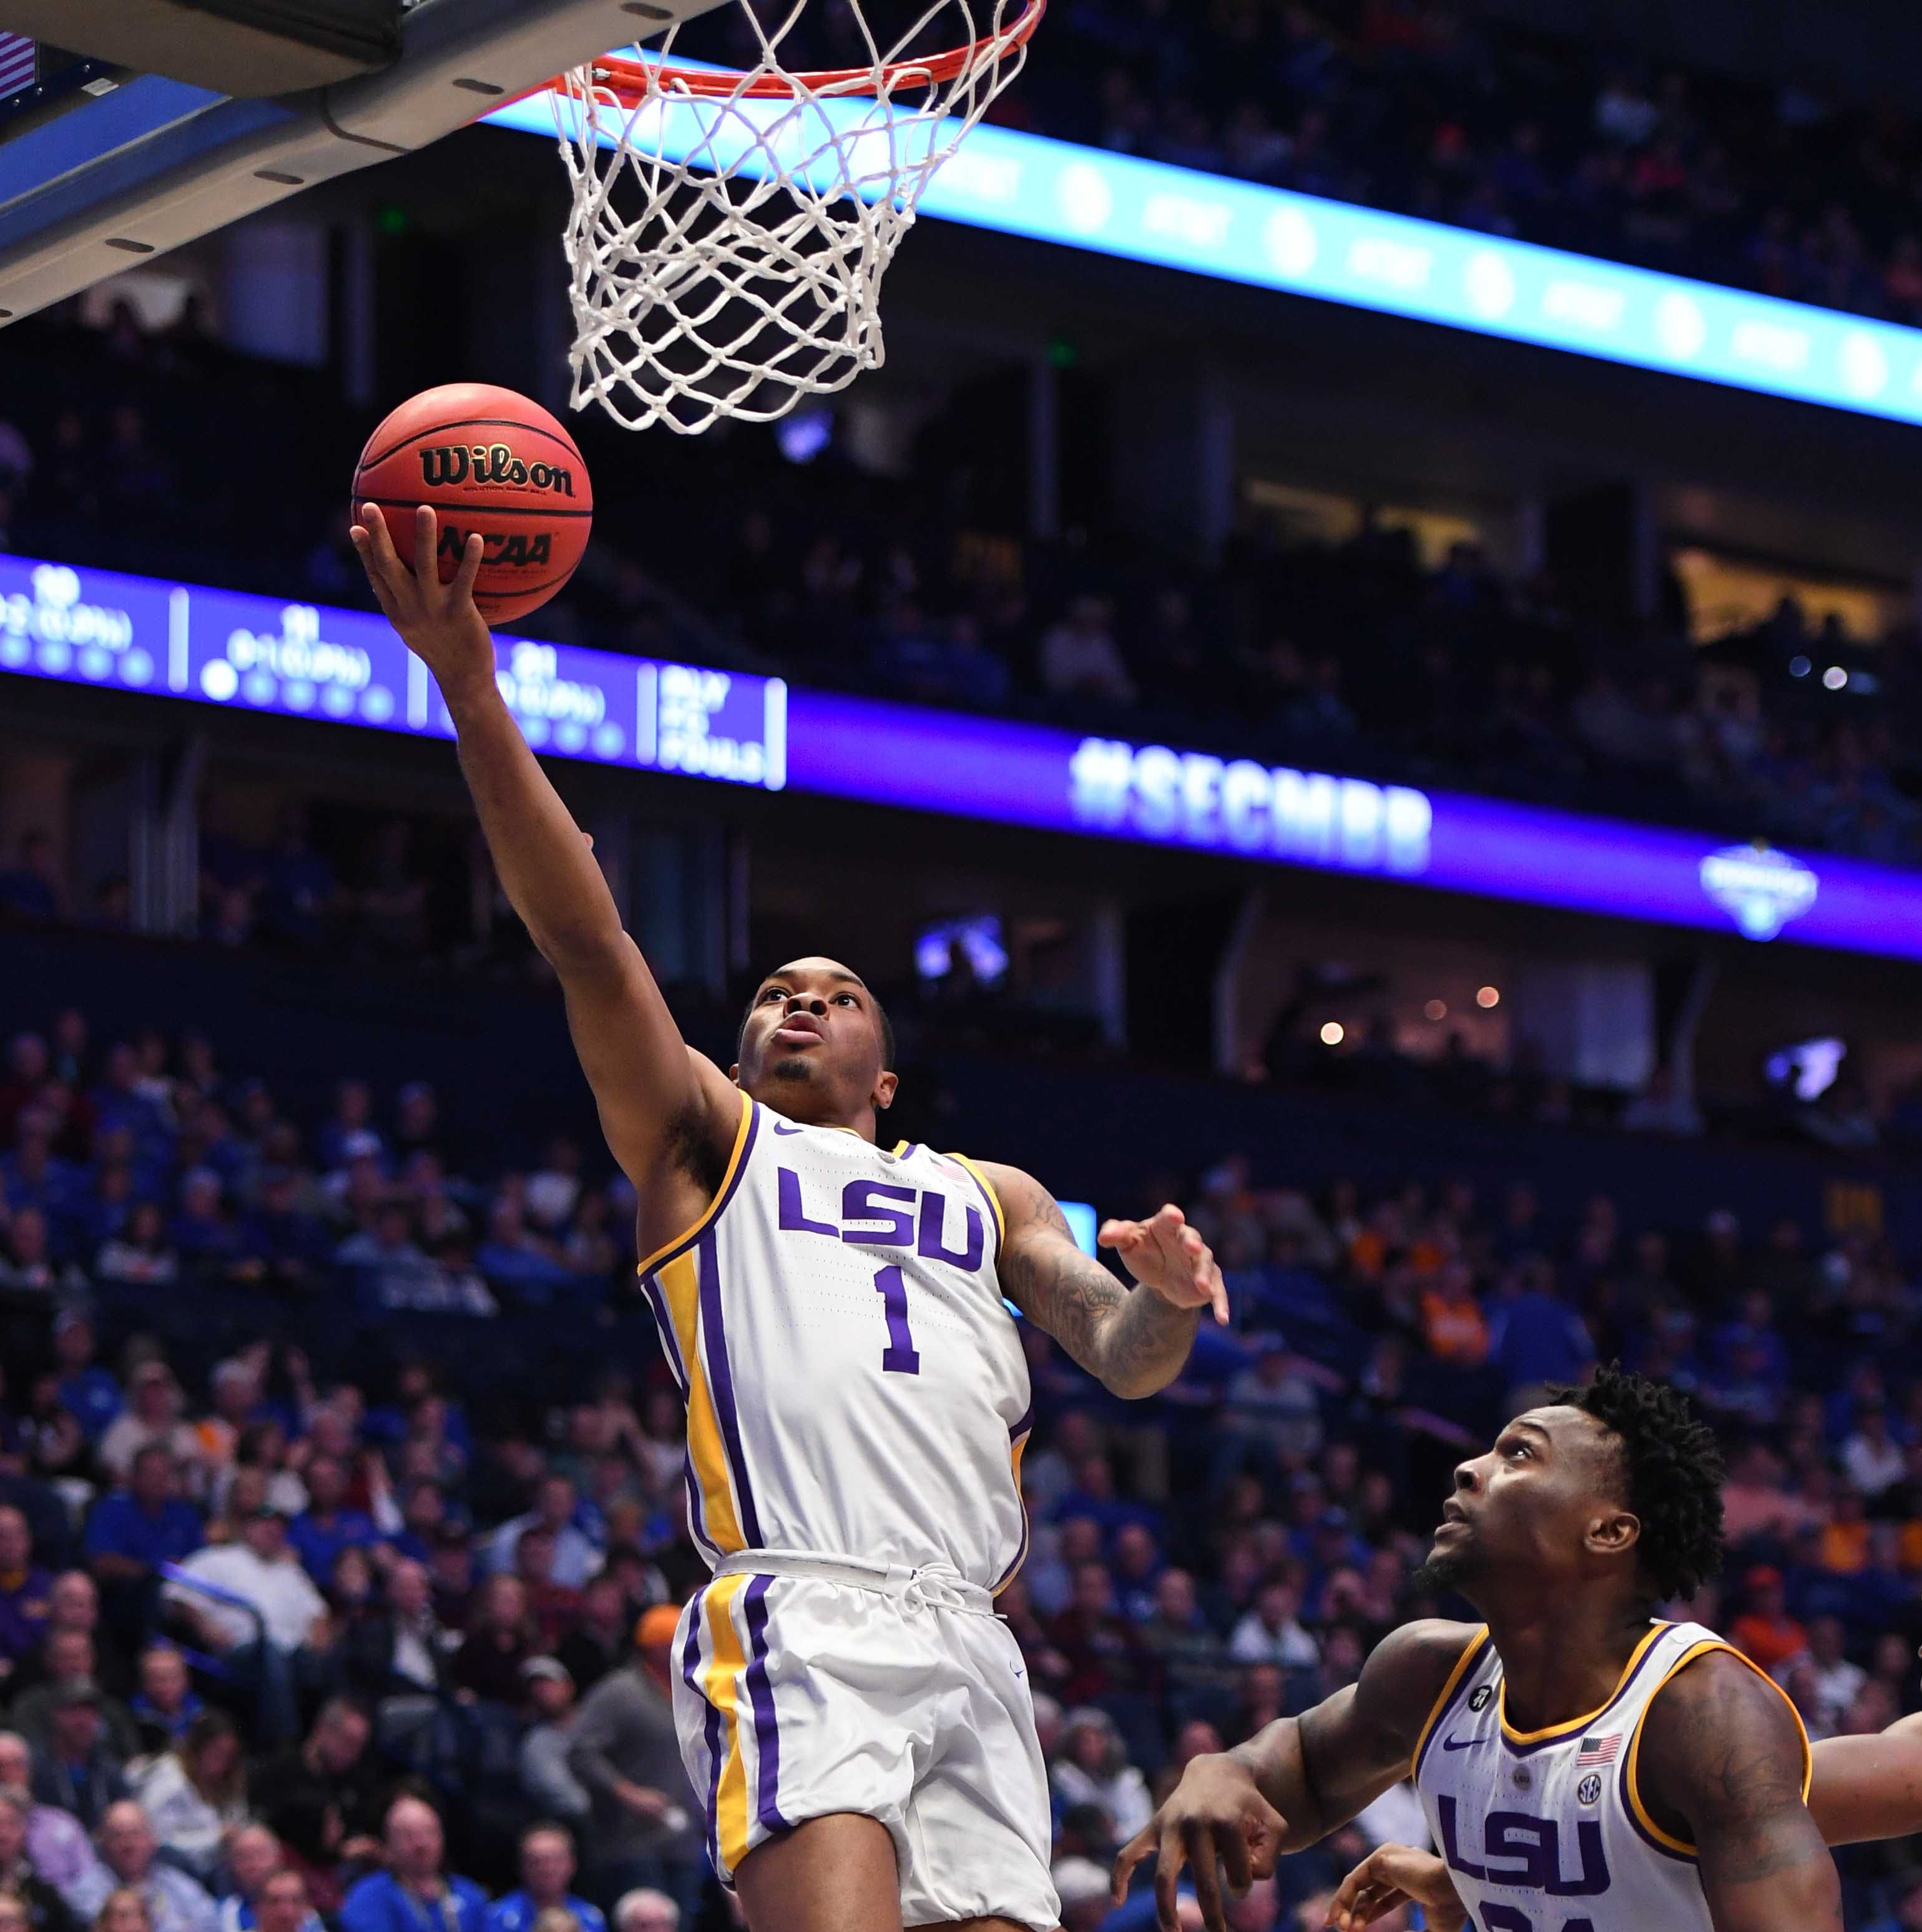 SEC Tournament 2019: How did LSU basketball player Javonte Smart do in his return?